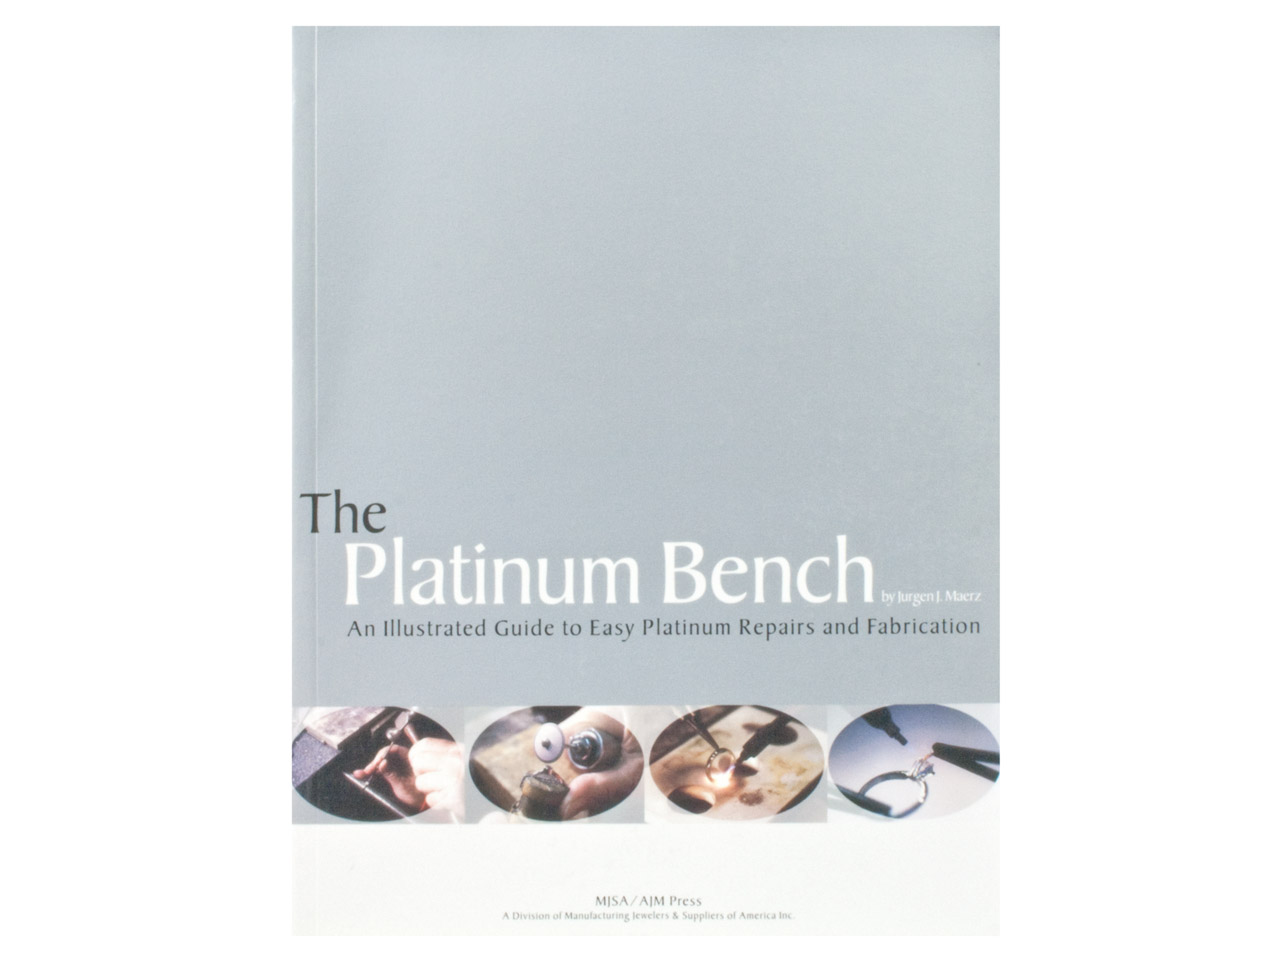 The Platinum Bench By Jurgen Maerz